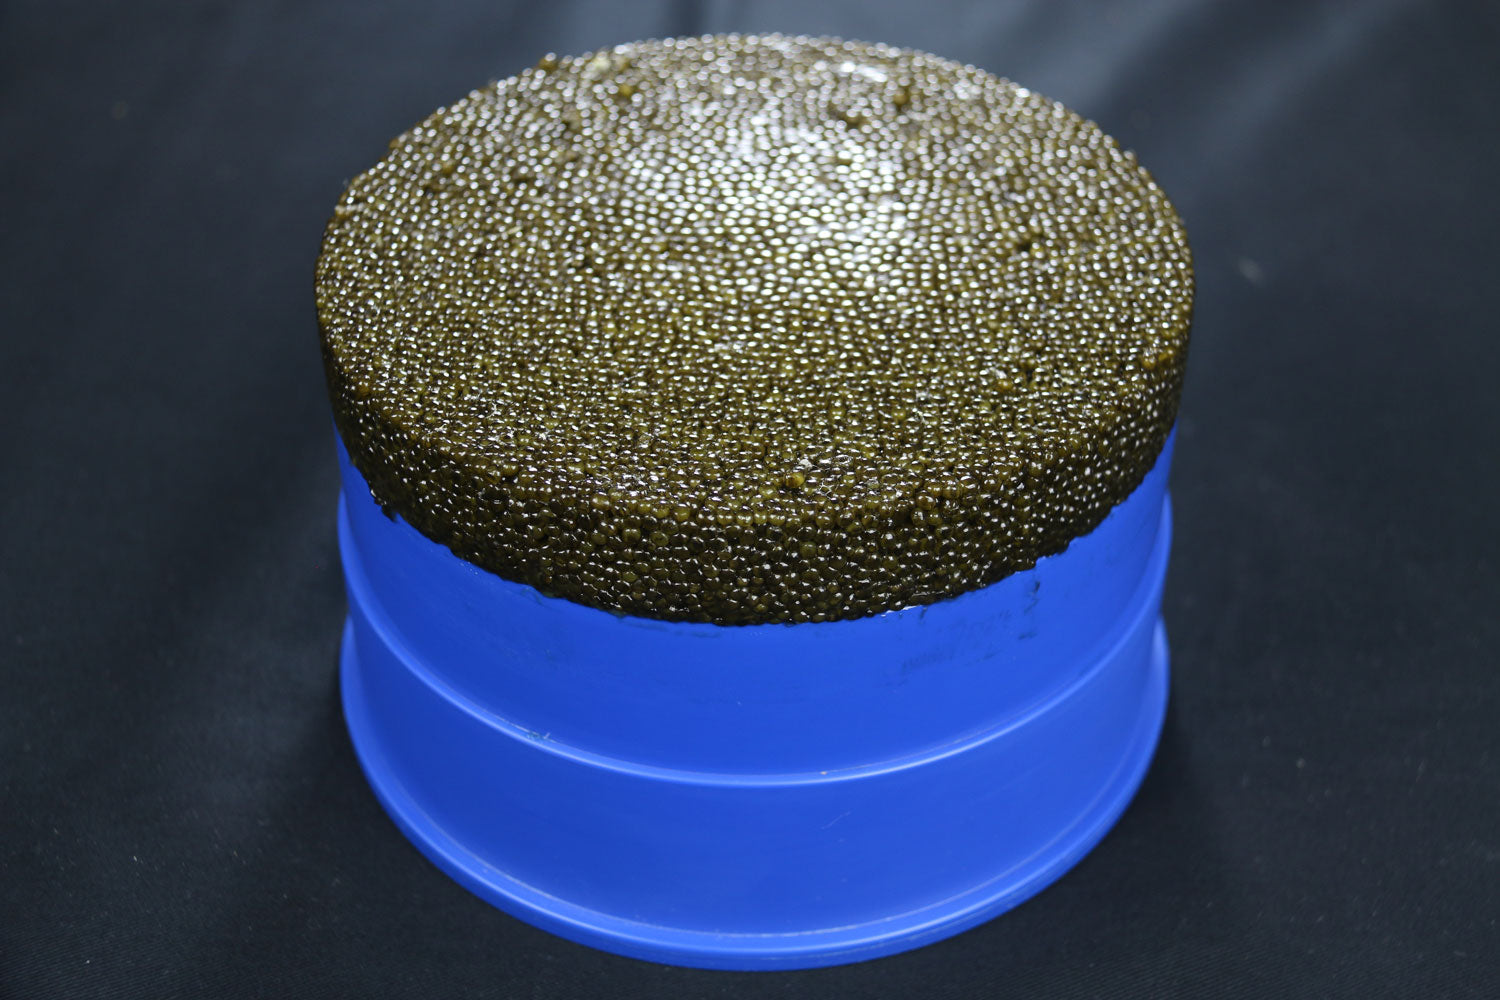 Royal Kaluga Supreme Caviar 2.4lb